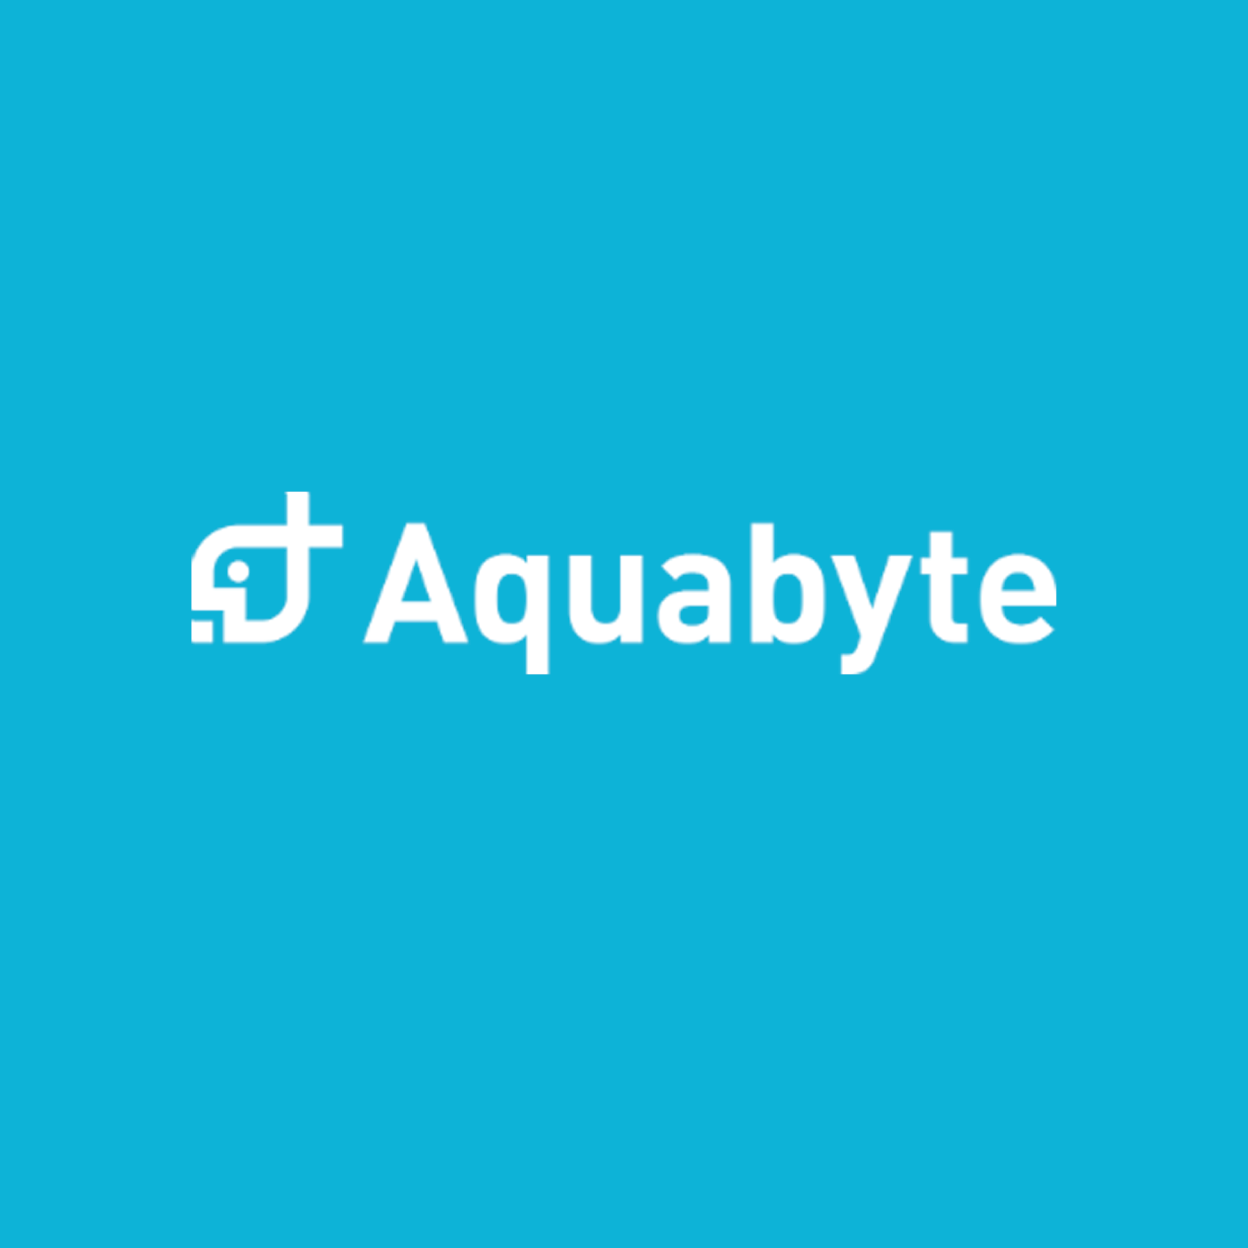 Aquabyte's algorithmic closed looped control feedback system tackles global food deficit by filling the gap between current supply and projected demand in the fastest growing sector of food production in the world- Fish farming, with $160Bn in yearly production.